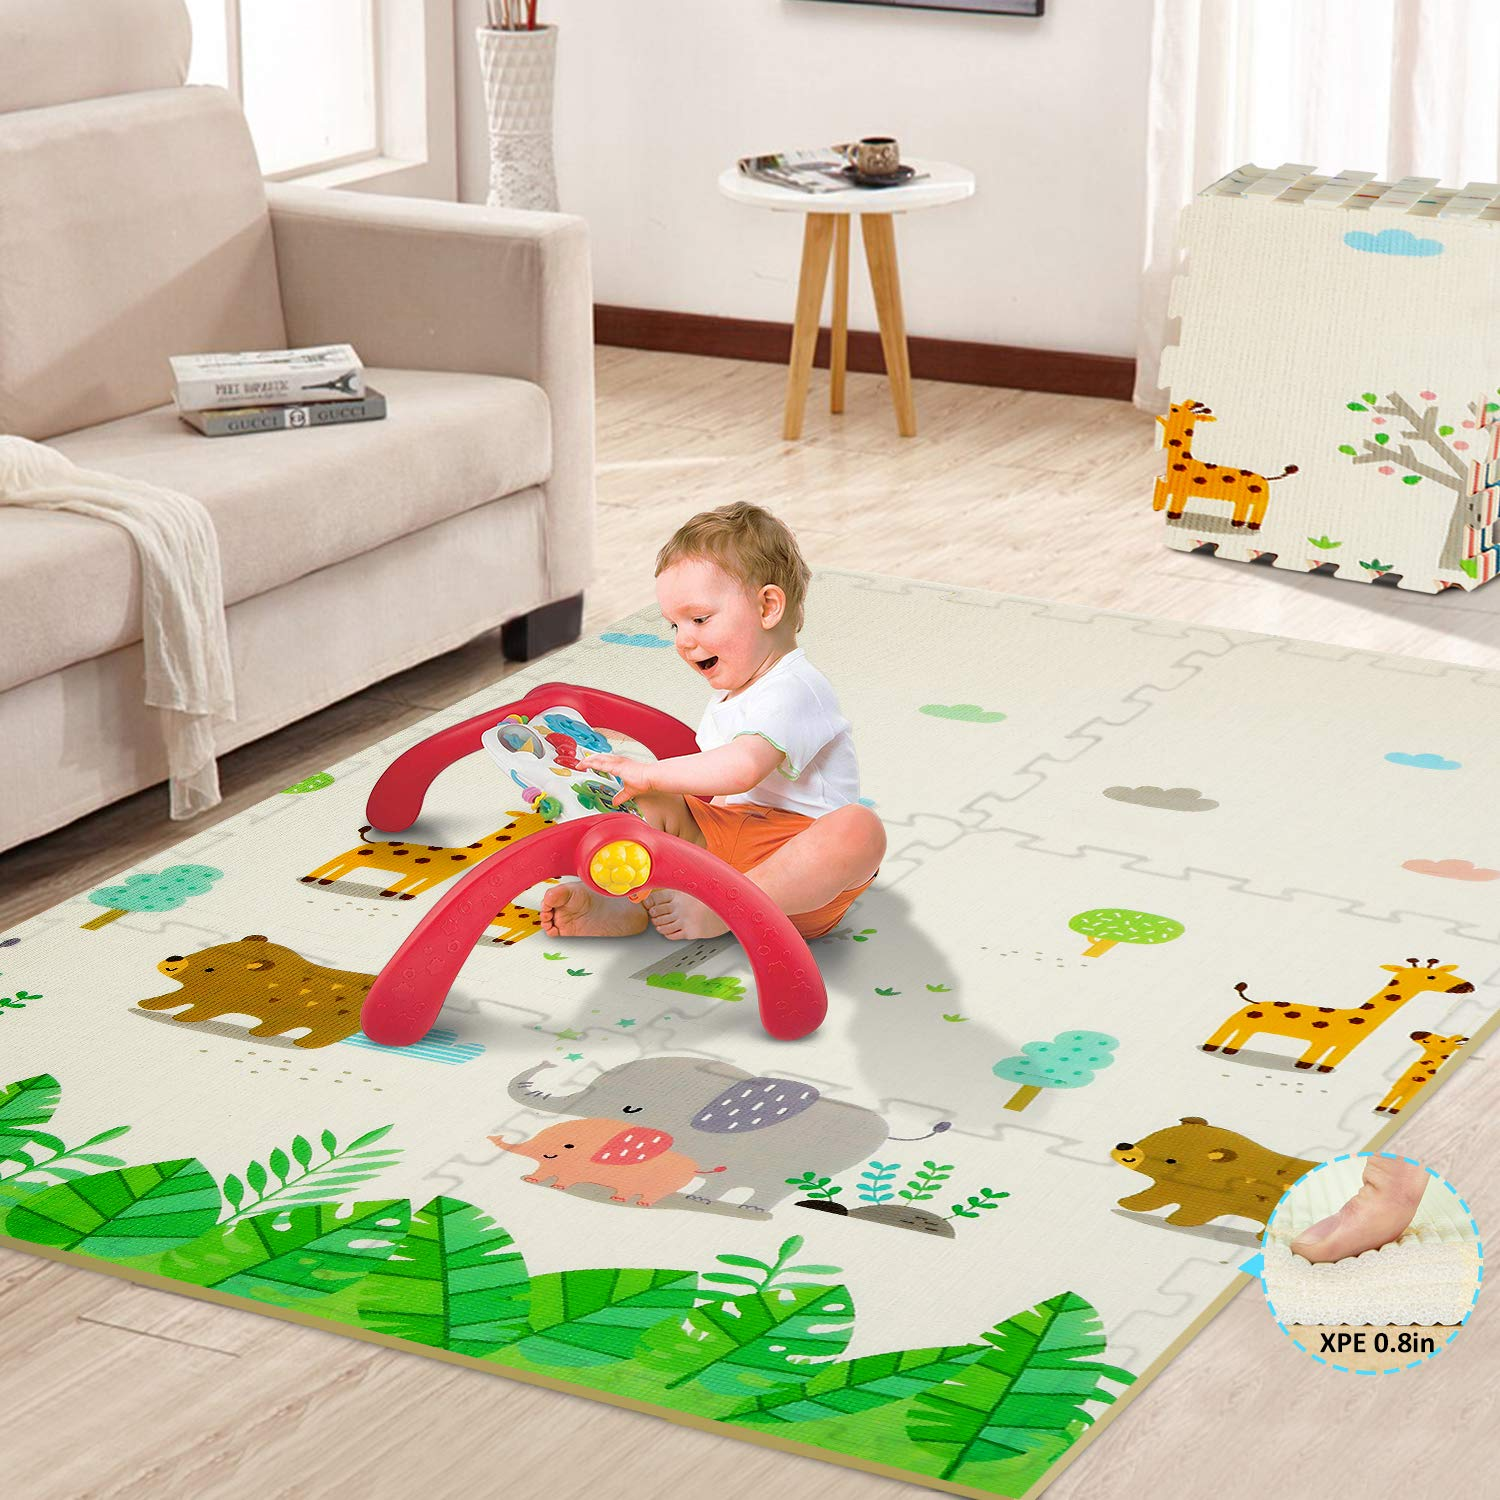 Baby Play Mat Large Foam Mat Extra Thick Playmat for Kids Waterproof Splicing Crawling Mat Puzzle Floor Mat Expandable Tiles with Edges for Babies & Infants & Toddlers